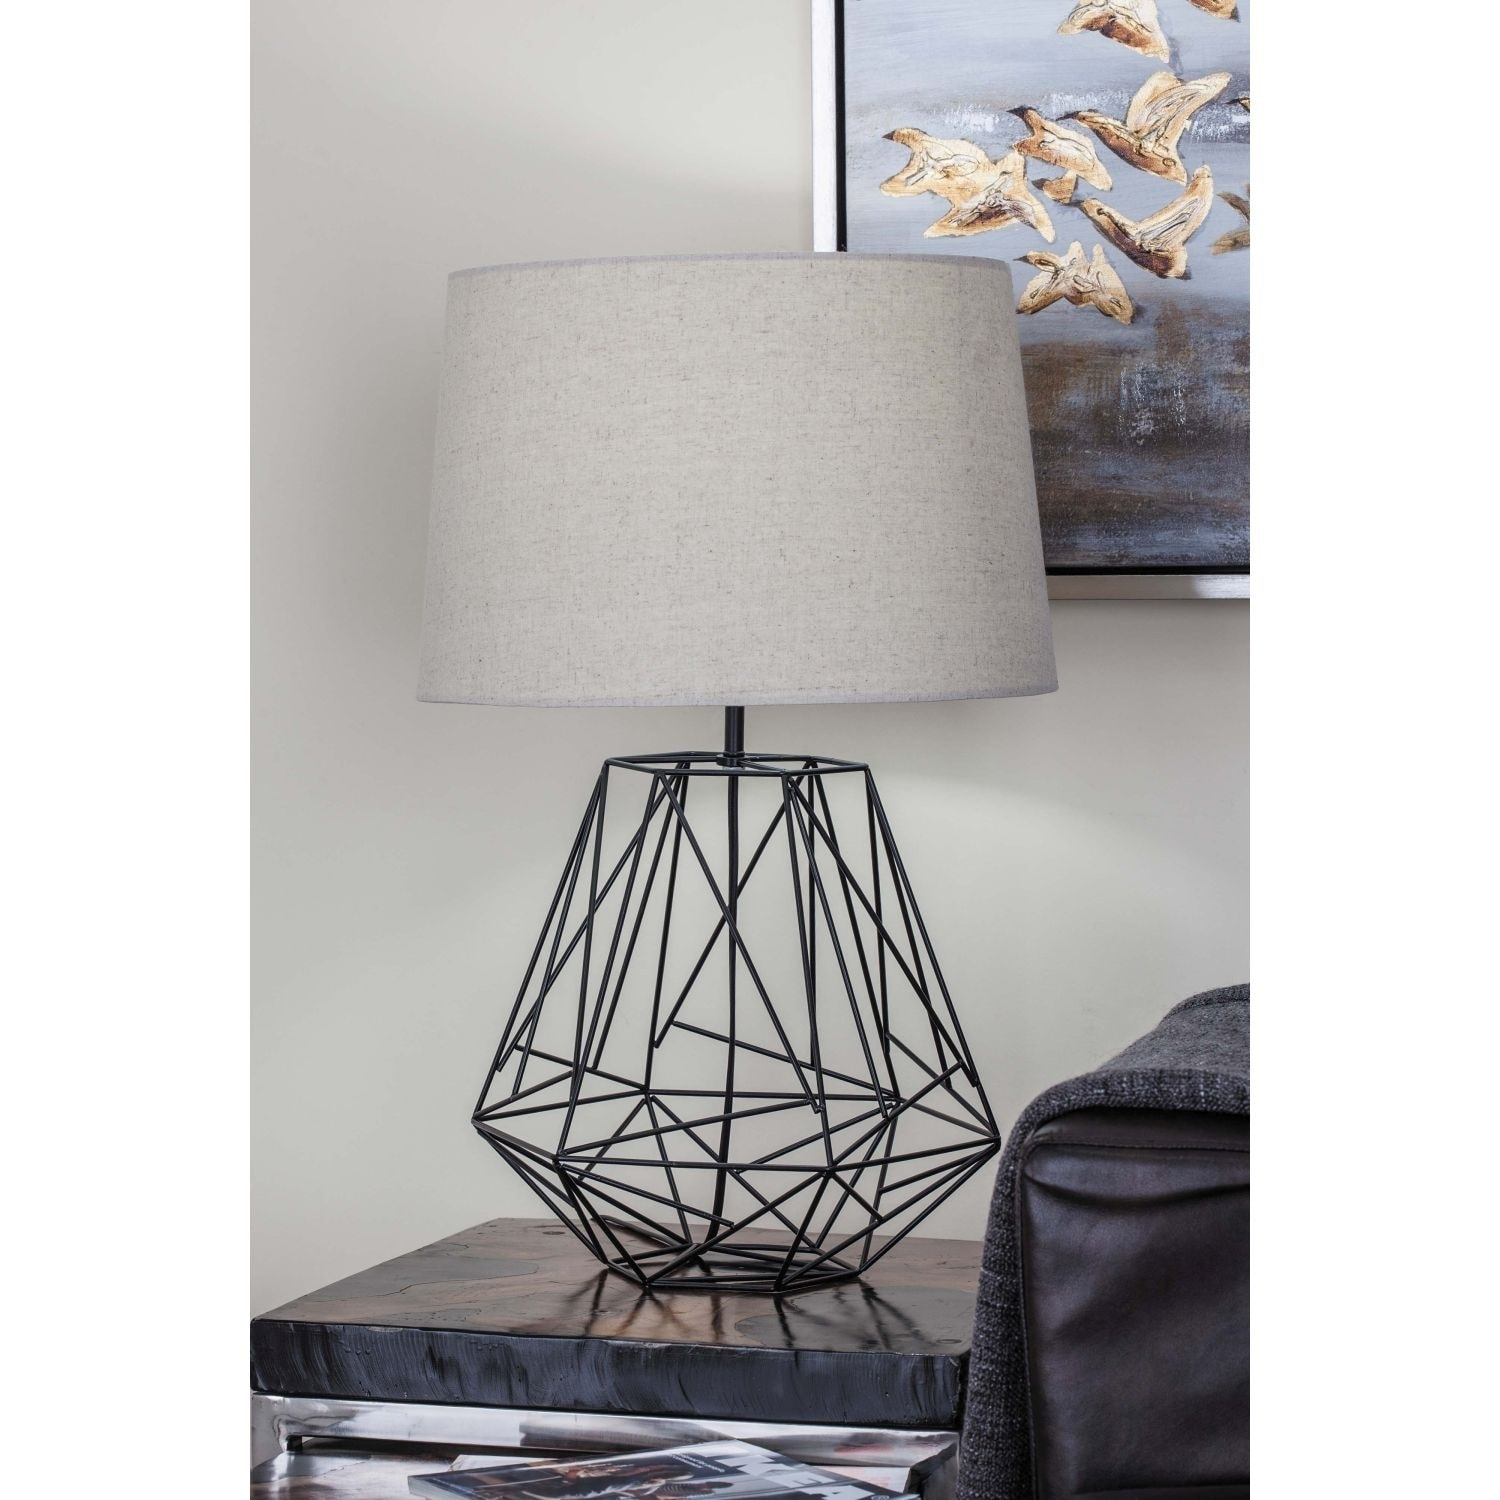 Shop Studio 350 Metal Black Wire Table Lamp 25 inches high - Free ...